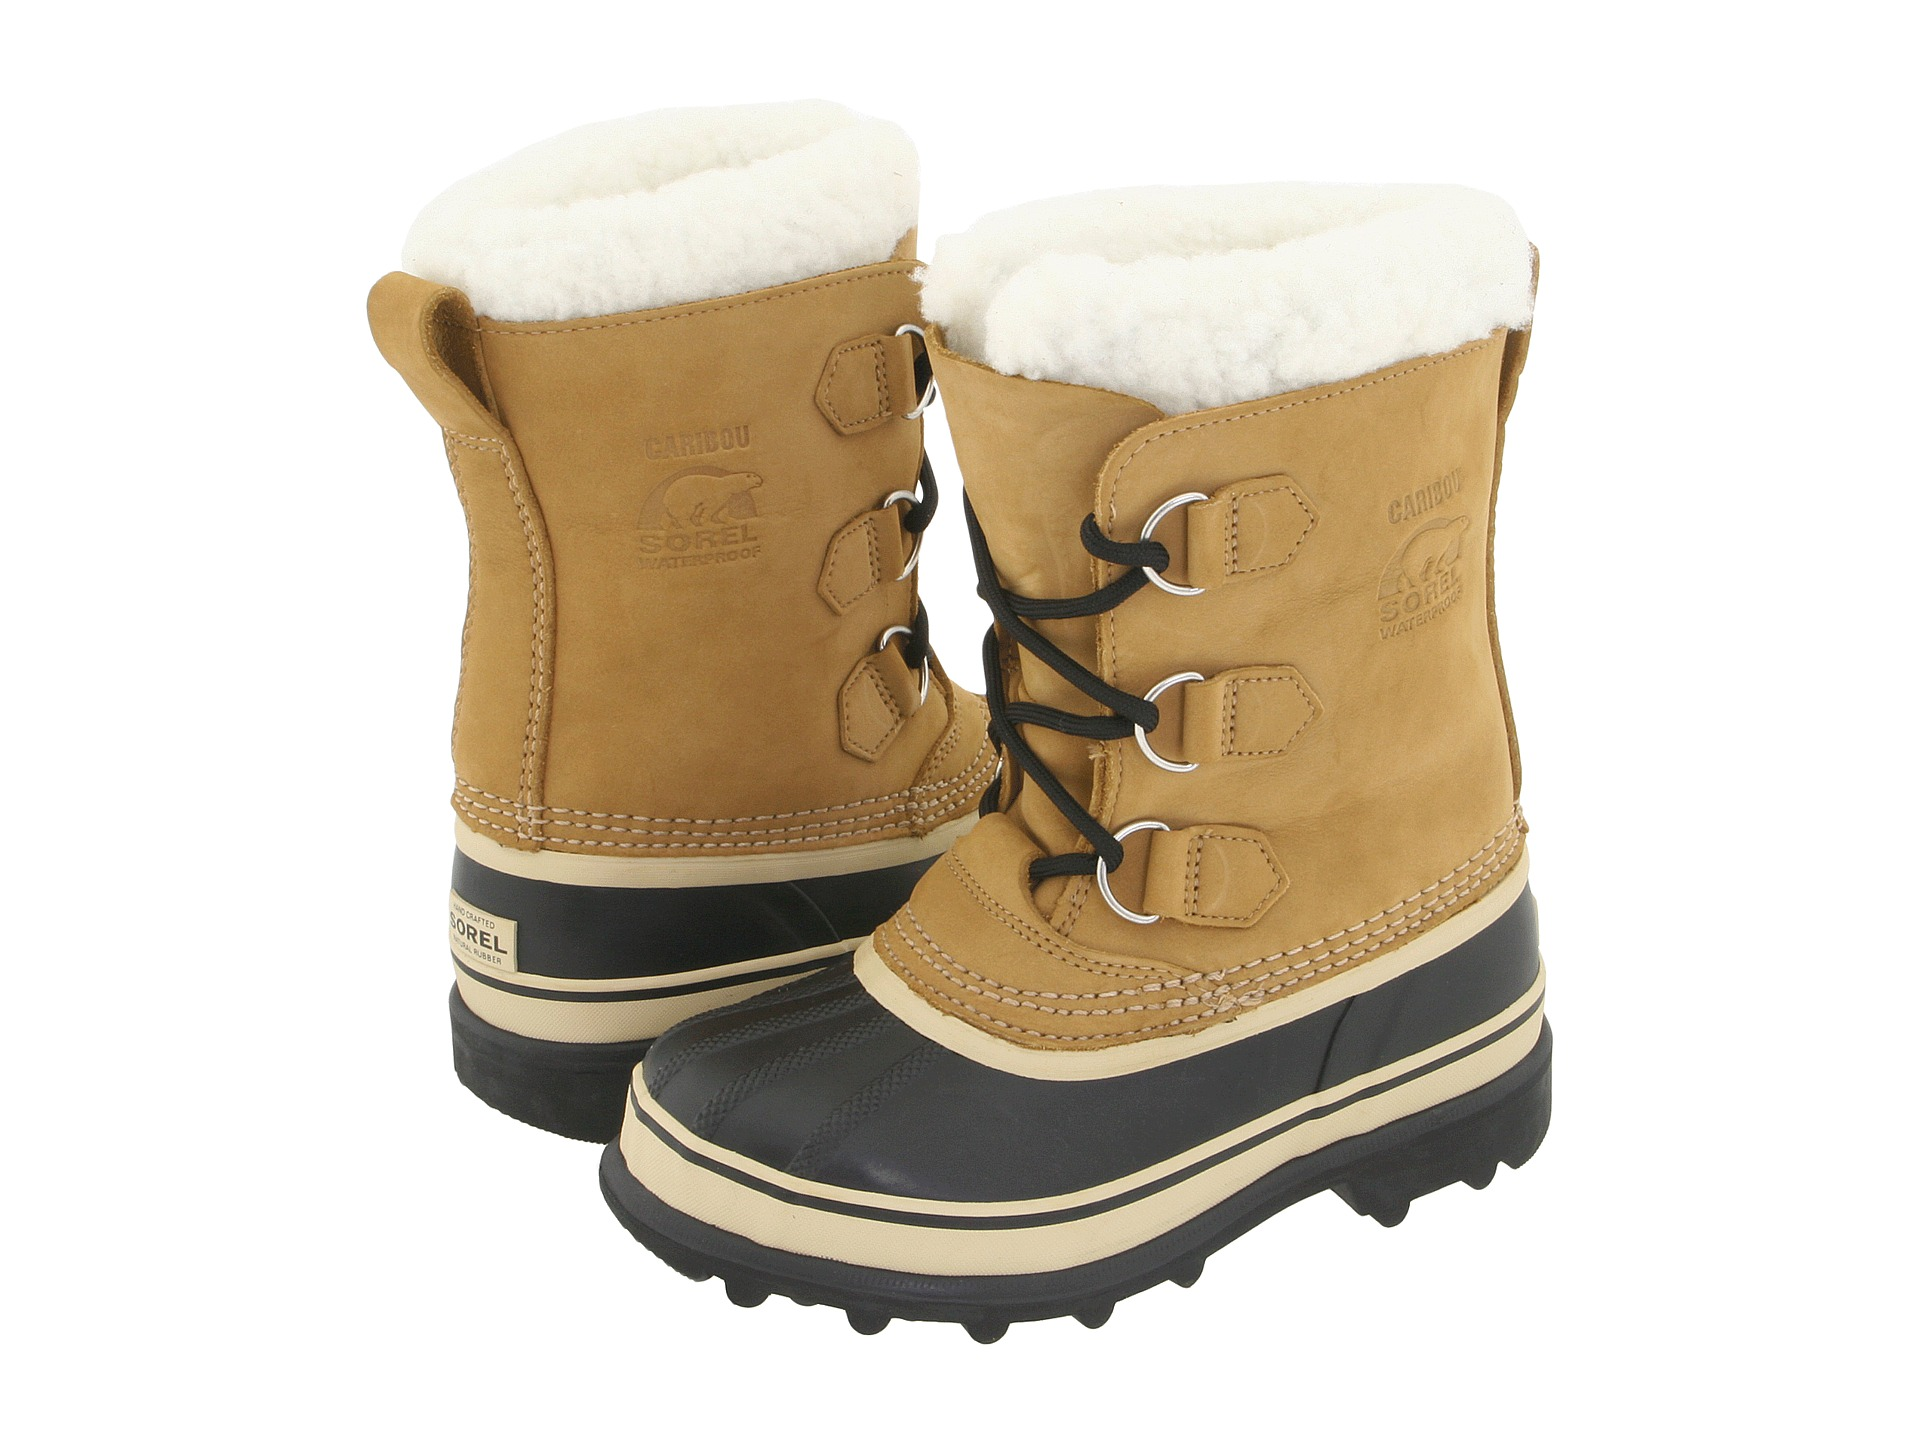 Youth Snow Boots acZd79yN